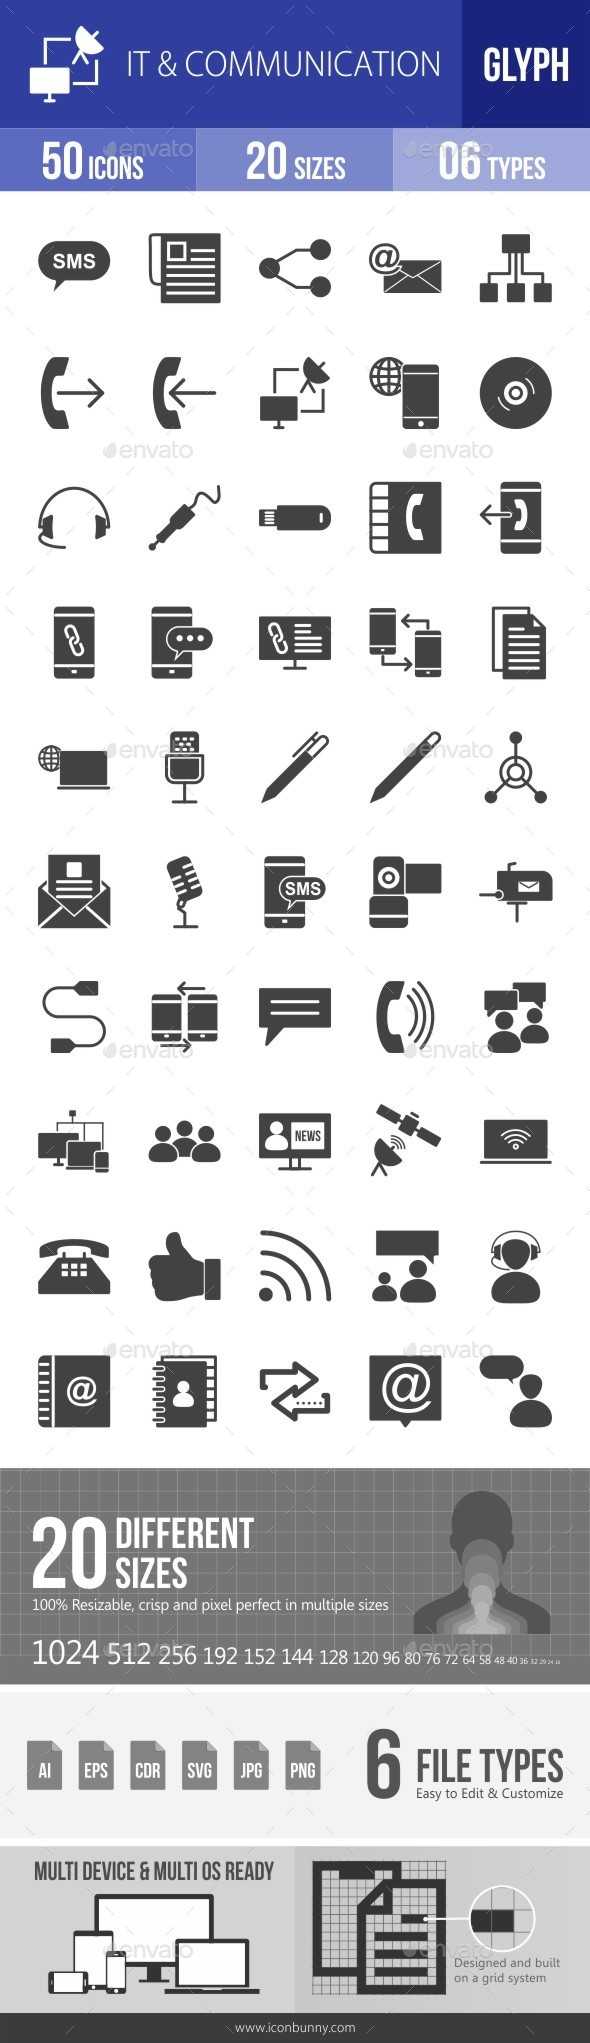 IT & Communication Glyph Icons - Icons